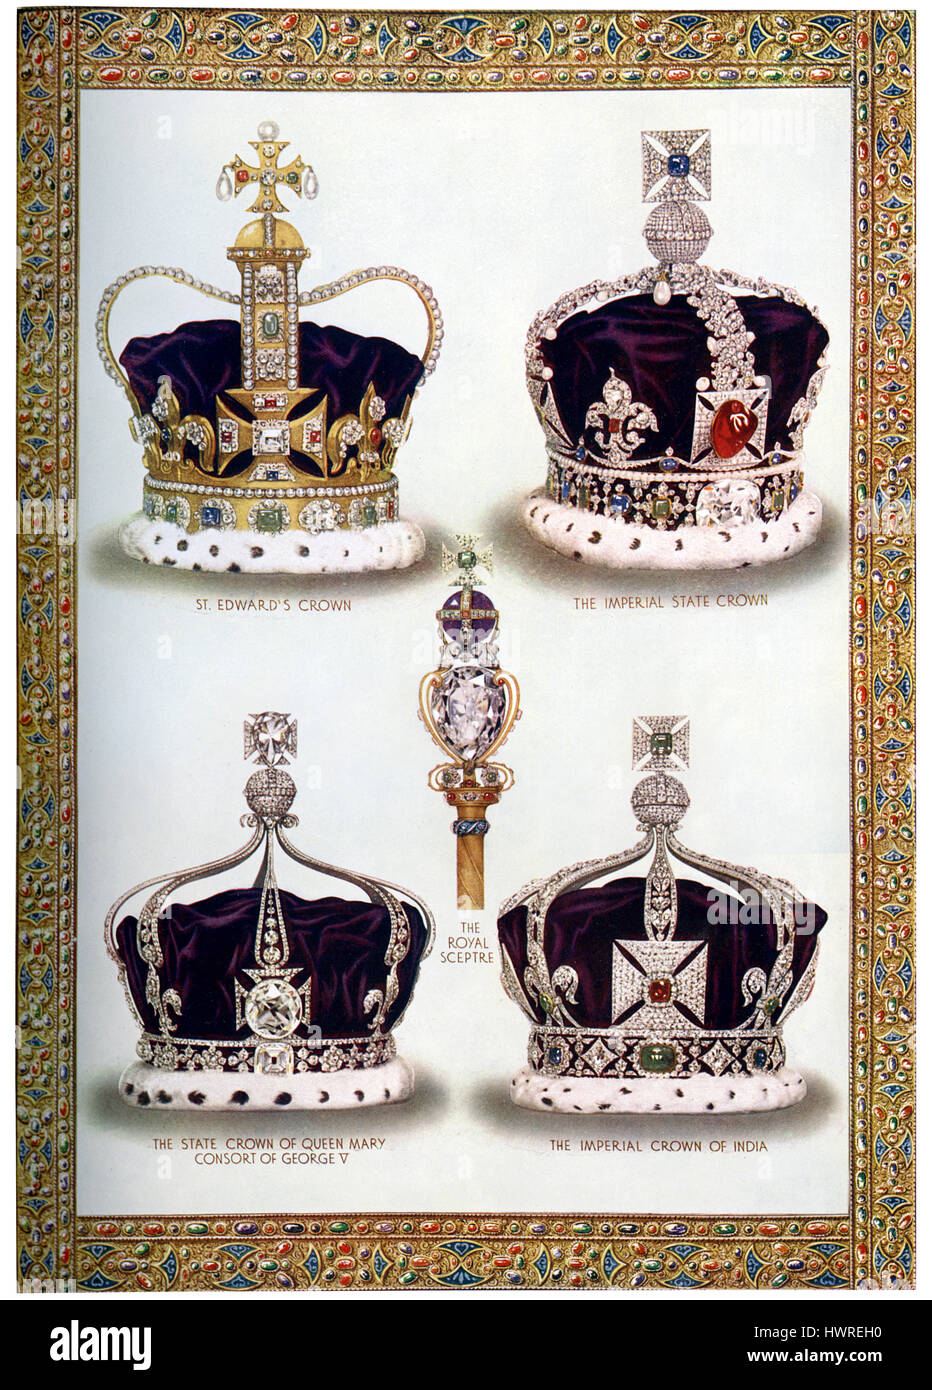 Royal crowns and sceptre, reign of King George V c. 1910. St Edward's Crown, Imperial State Crown, Royal Sceptre, - Stock Image